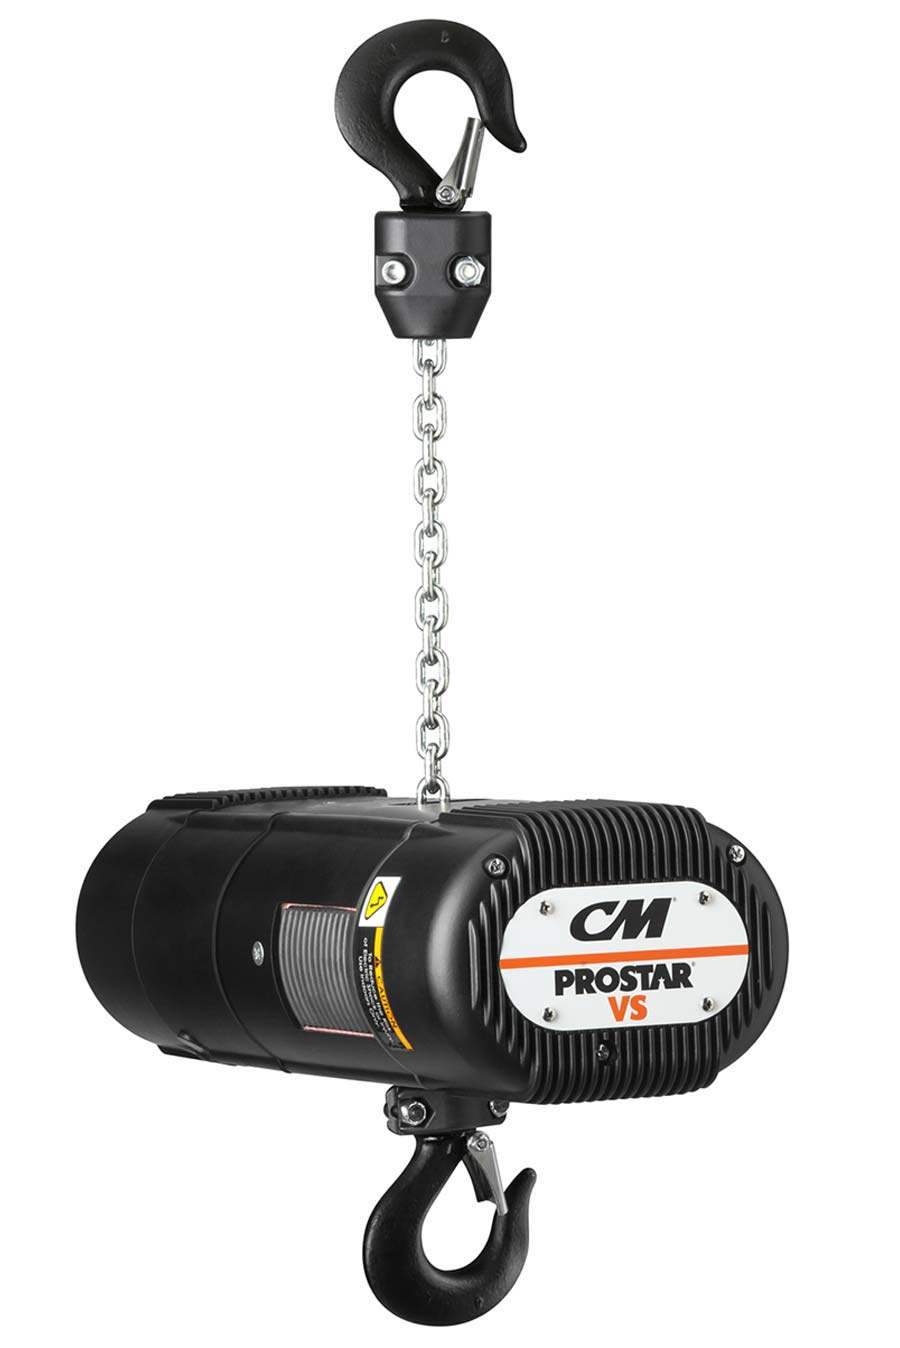 CM Prostar VS Chain Hoist